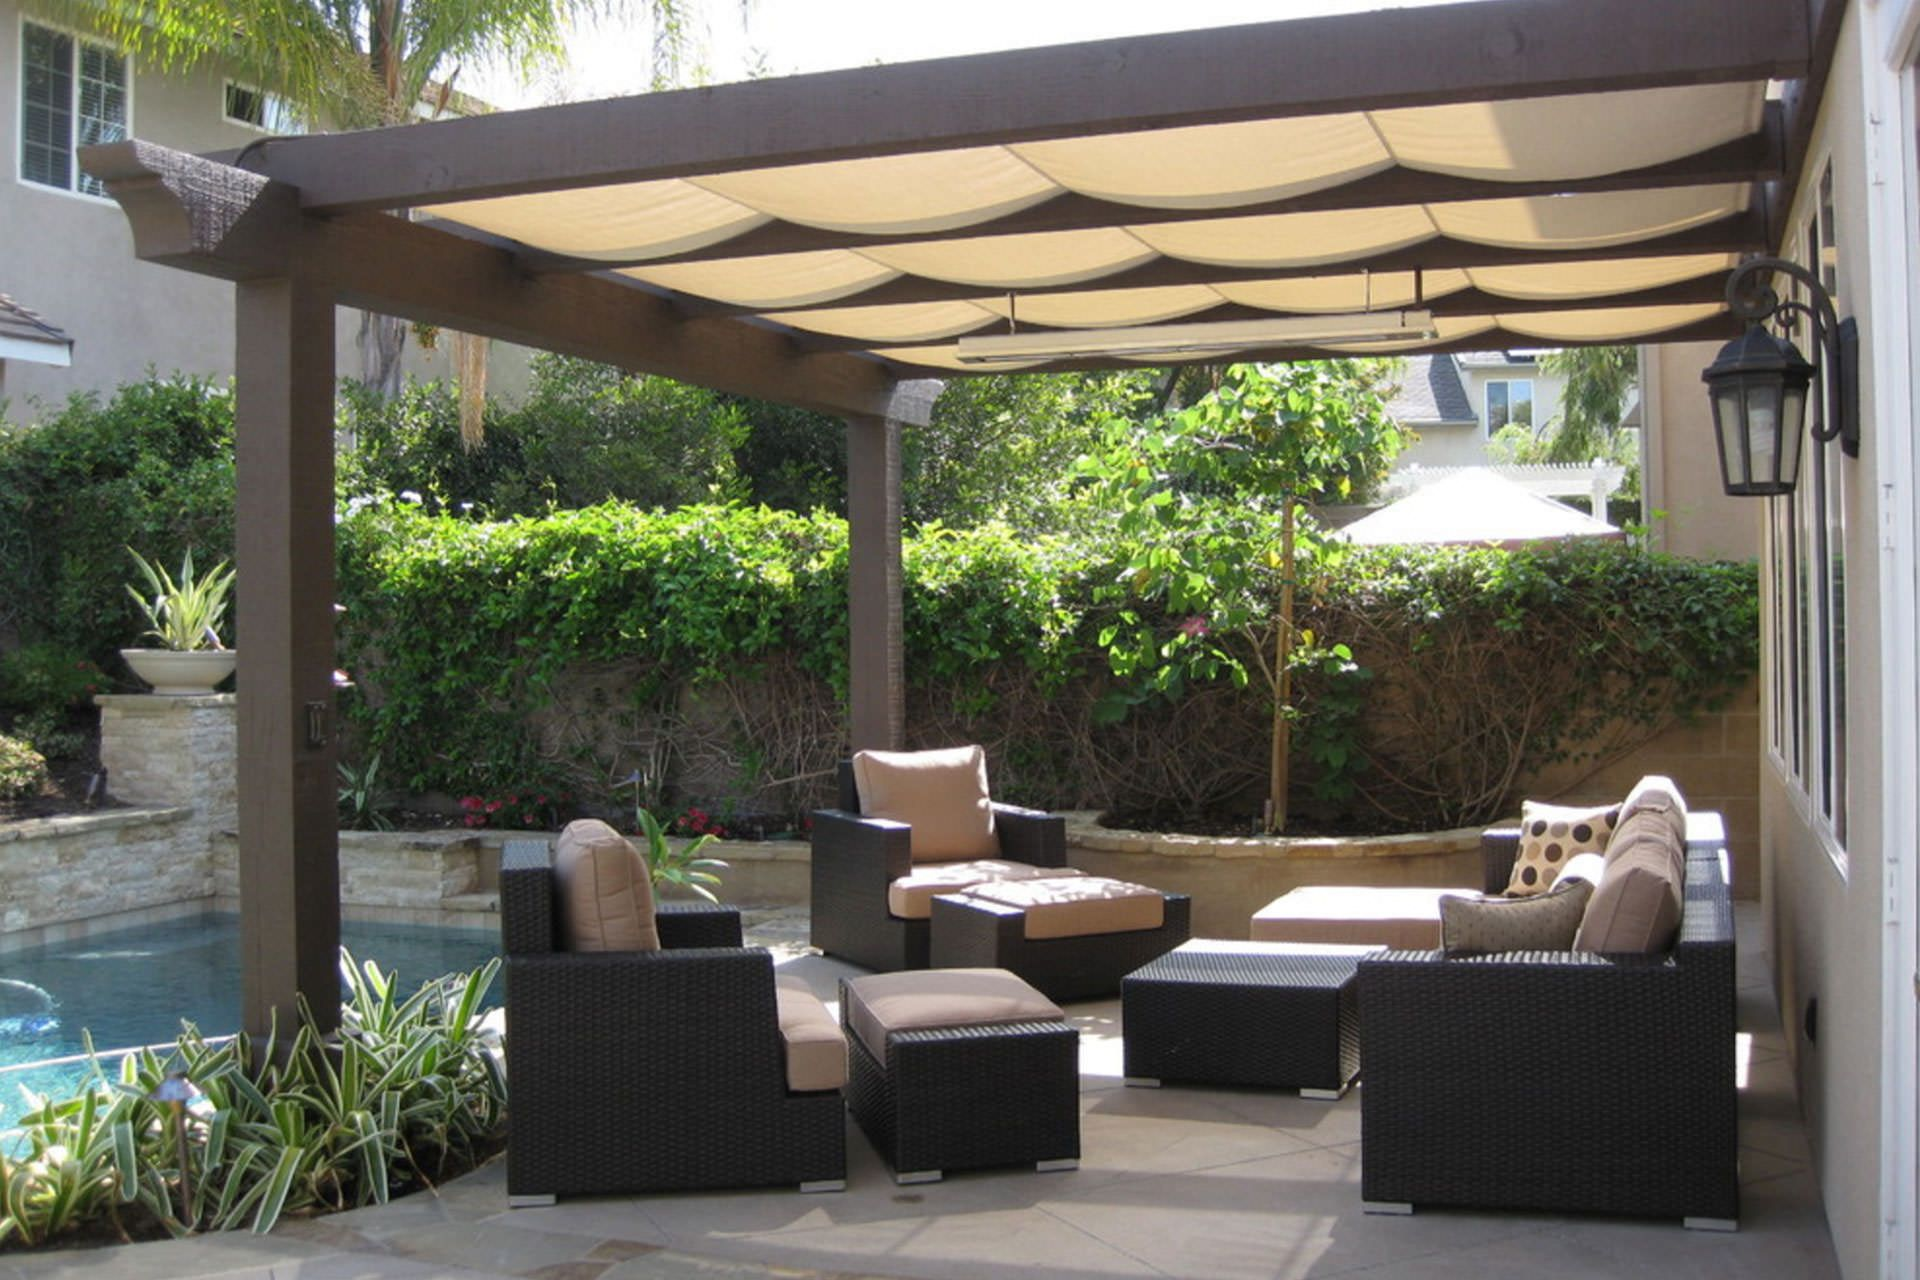 Find out which pergola shade option is best for your space